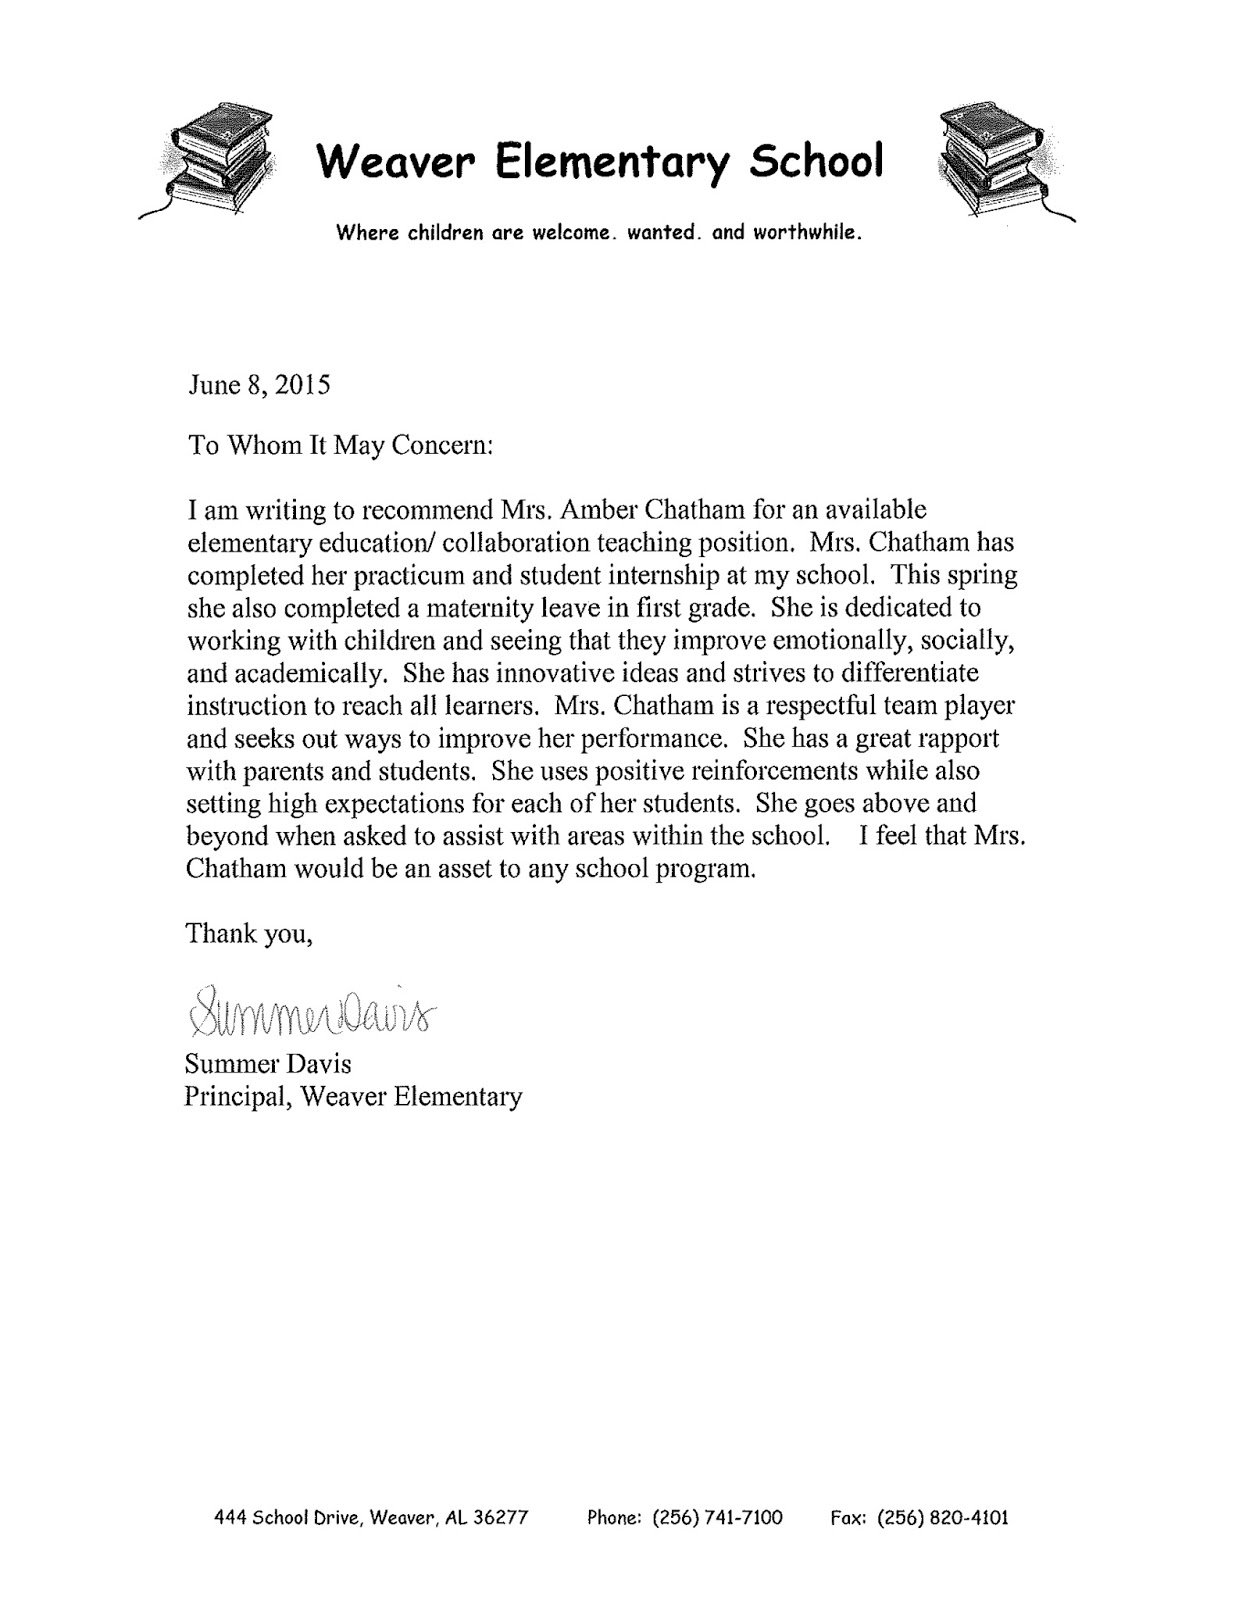 chats chatham reference letters letter of recommendation kay adams collaborative teacher grade 4 6